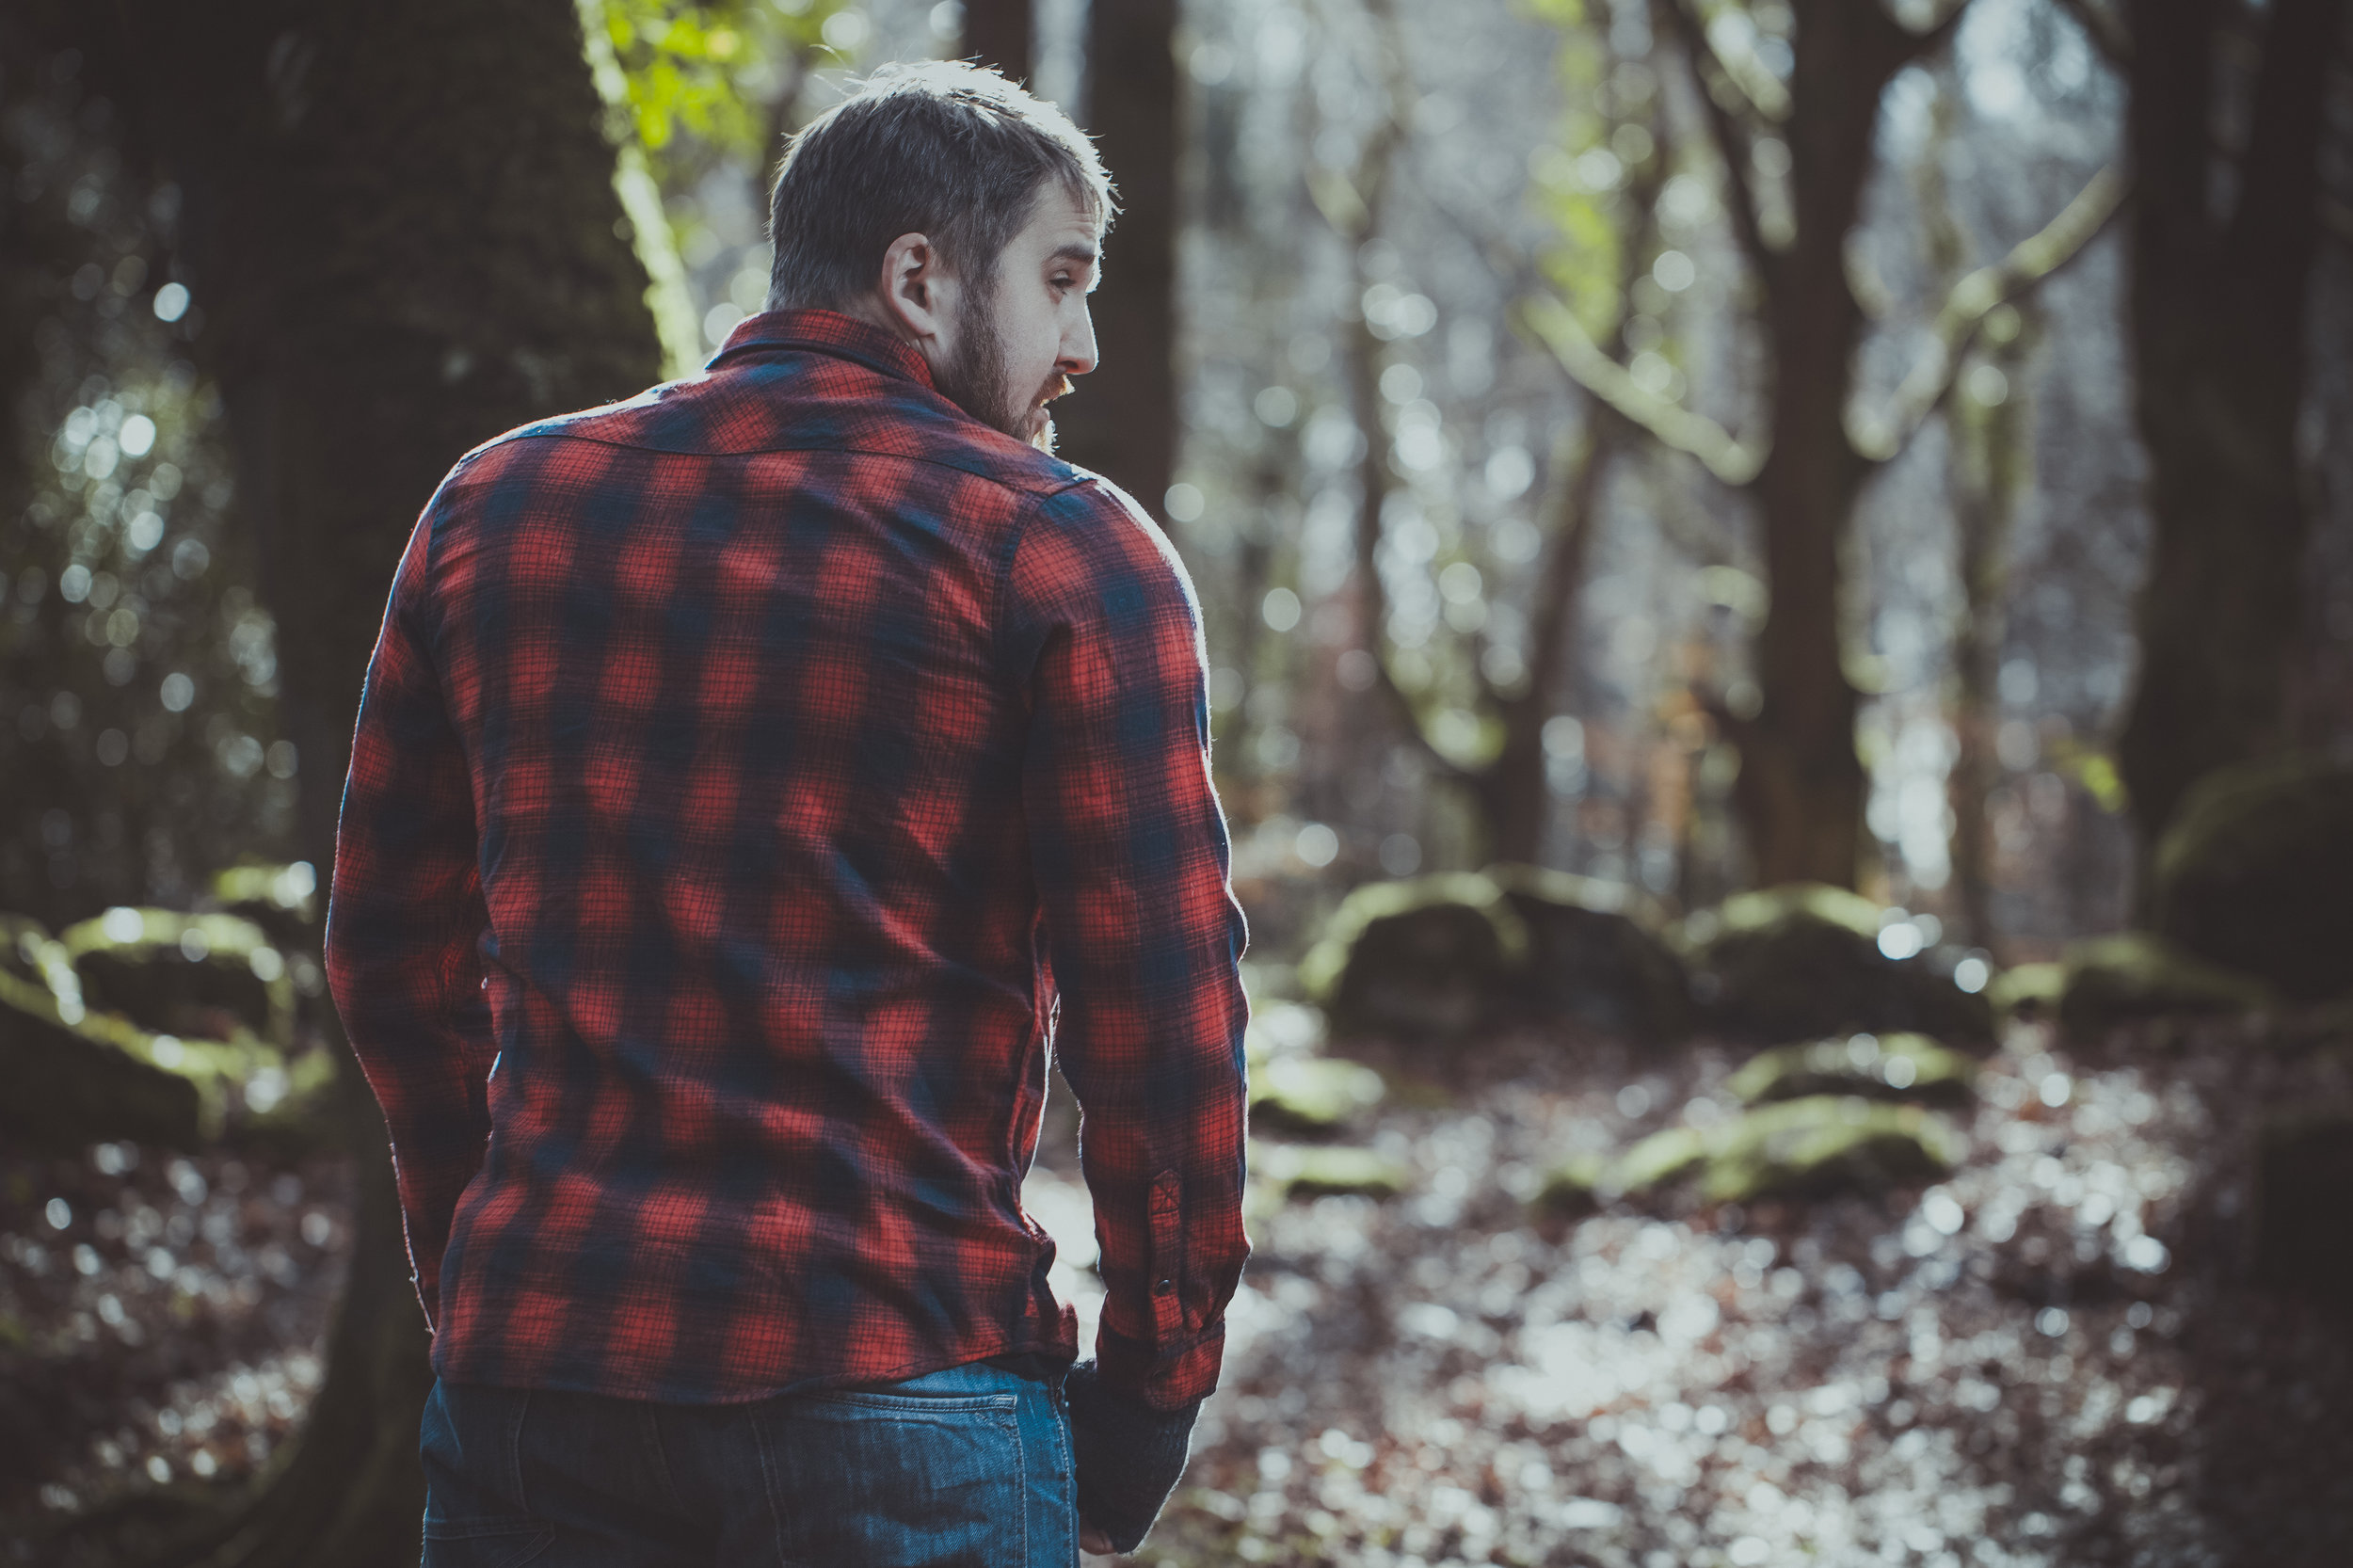 Man standing in forest in square shirt.